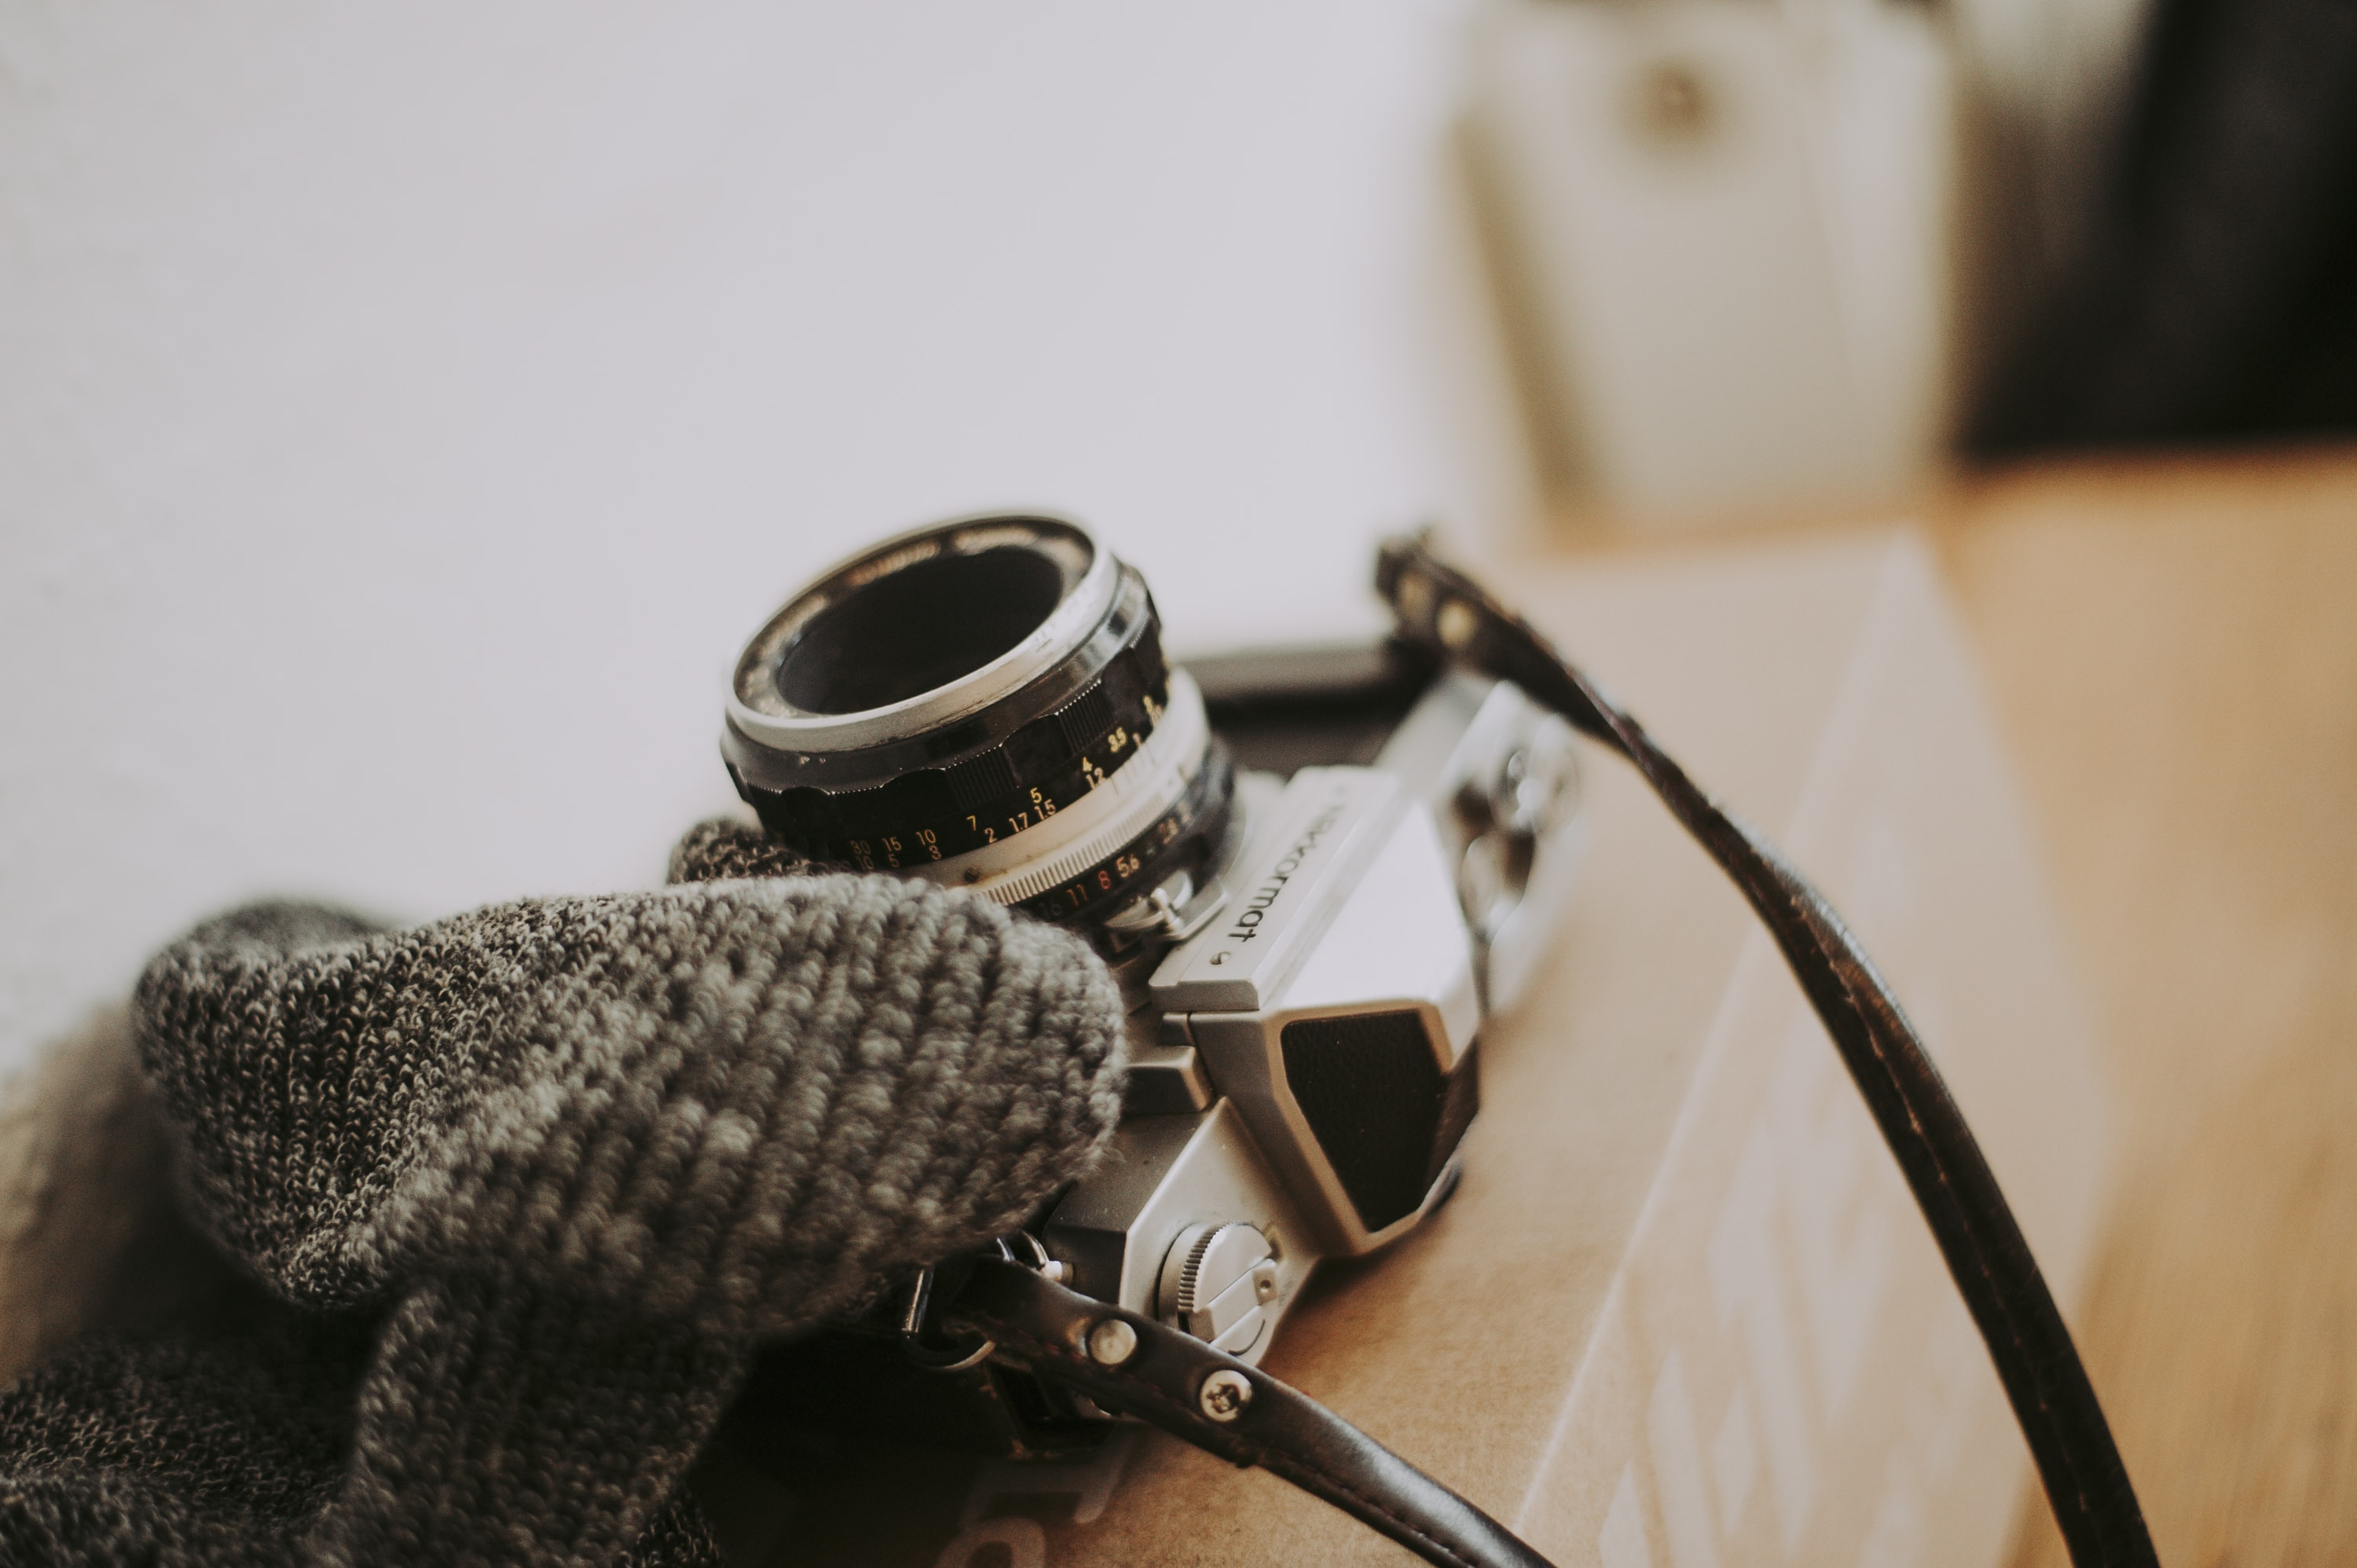 A knit scarf and a vintage camera on a cardboard box